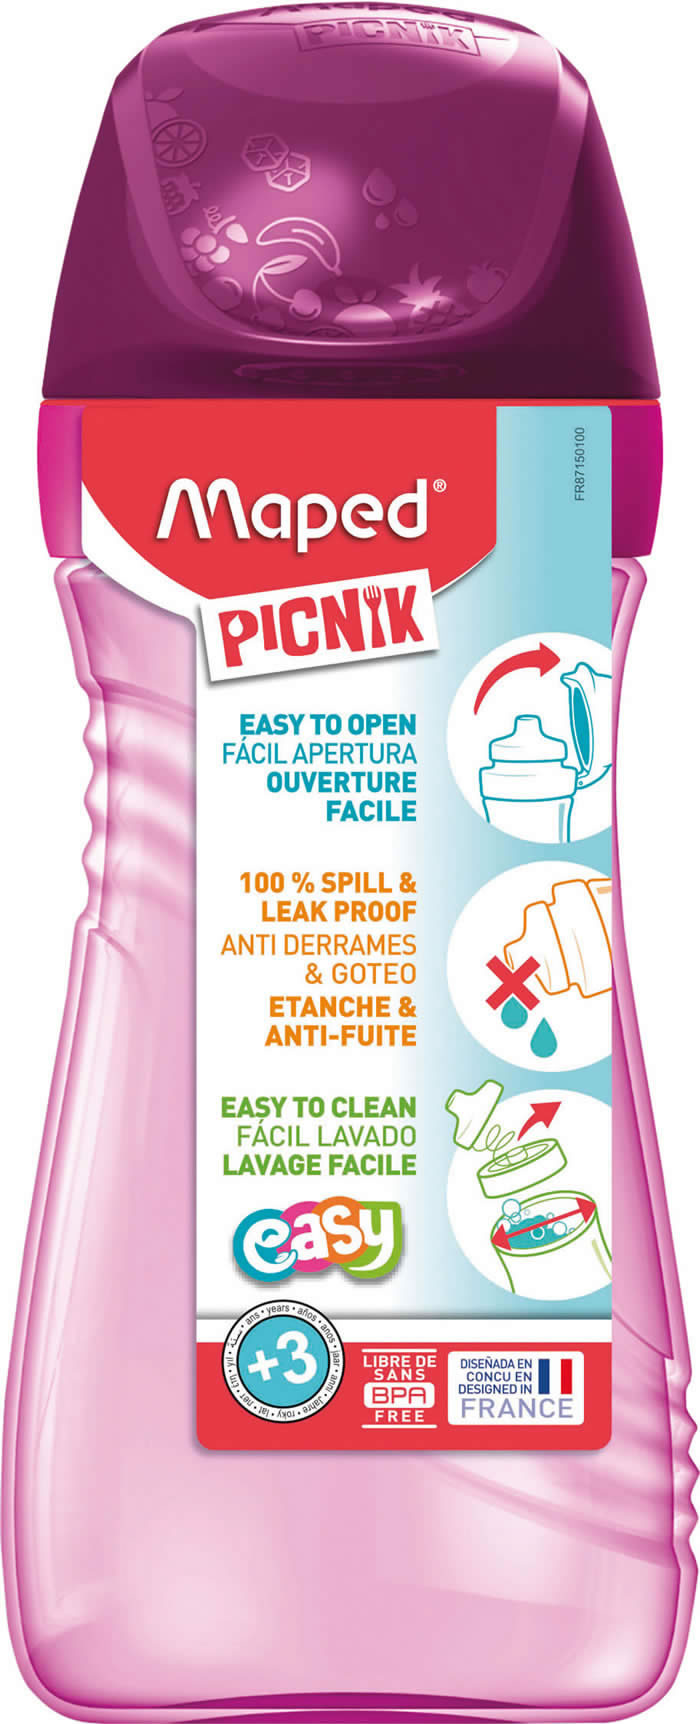 BOTELLA MAPED PICNIK 430 ML. ROSA (871501)